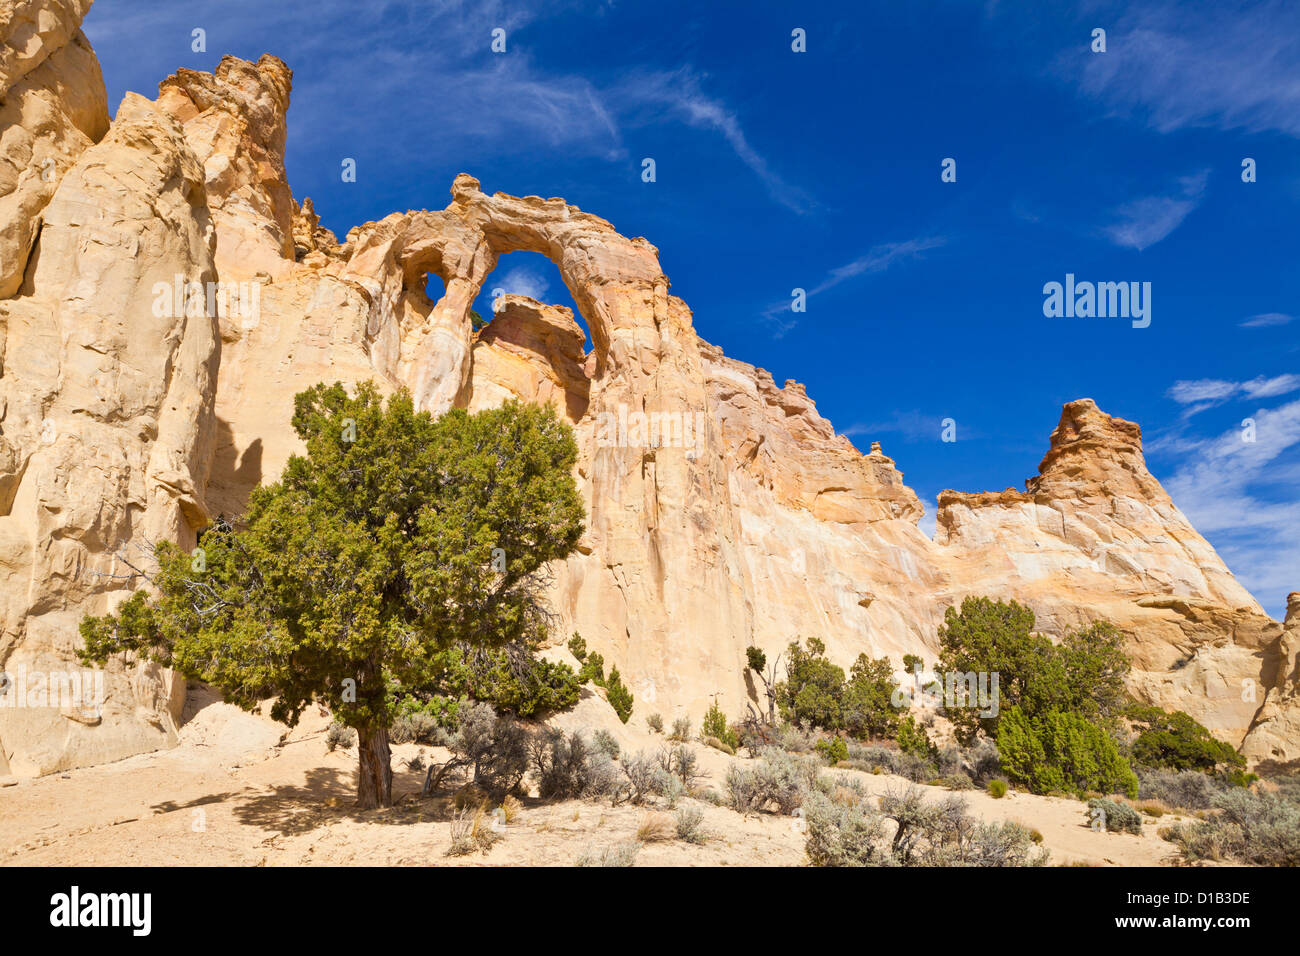 Grosvenor Arch, Cannonville, Grand Staircase-Escalante National Monument, Utah, United States of America, North - Stock Image